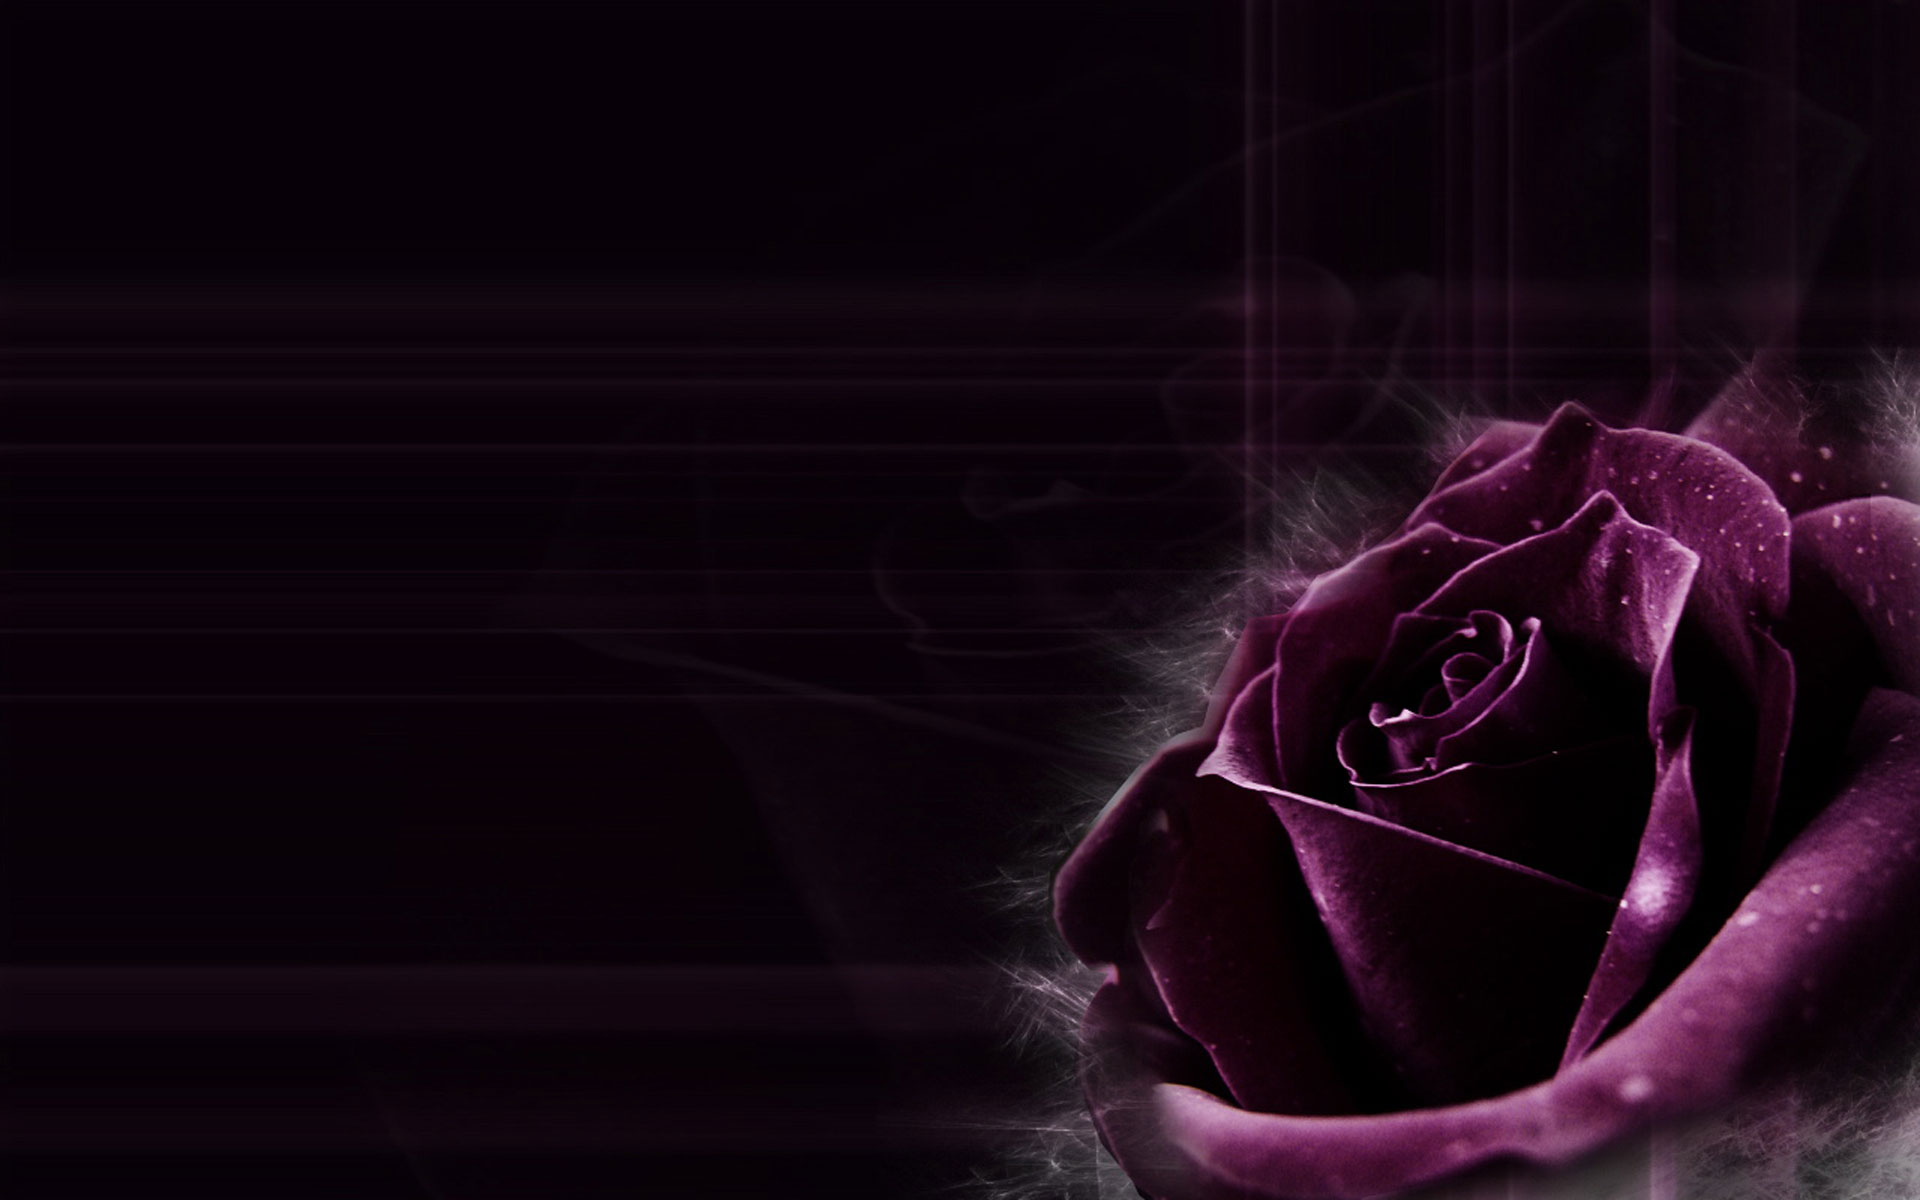 Purple roses wallpaper 15 hd wallpaper for Purple makes you feel